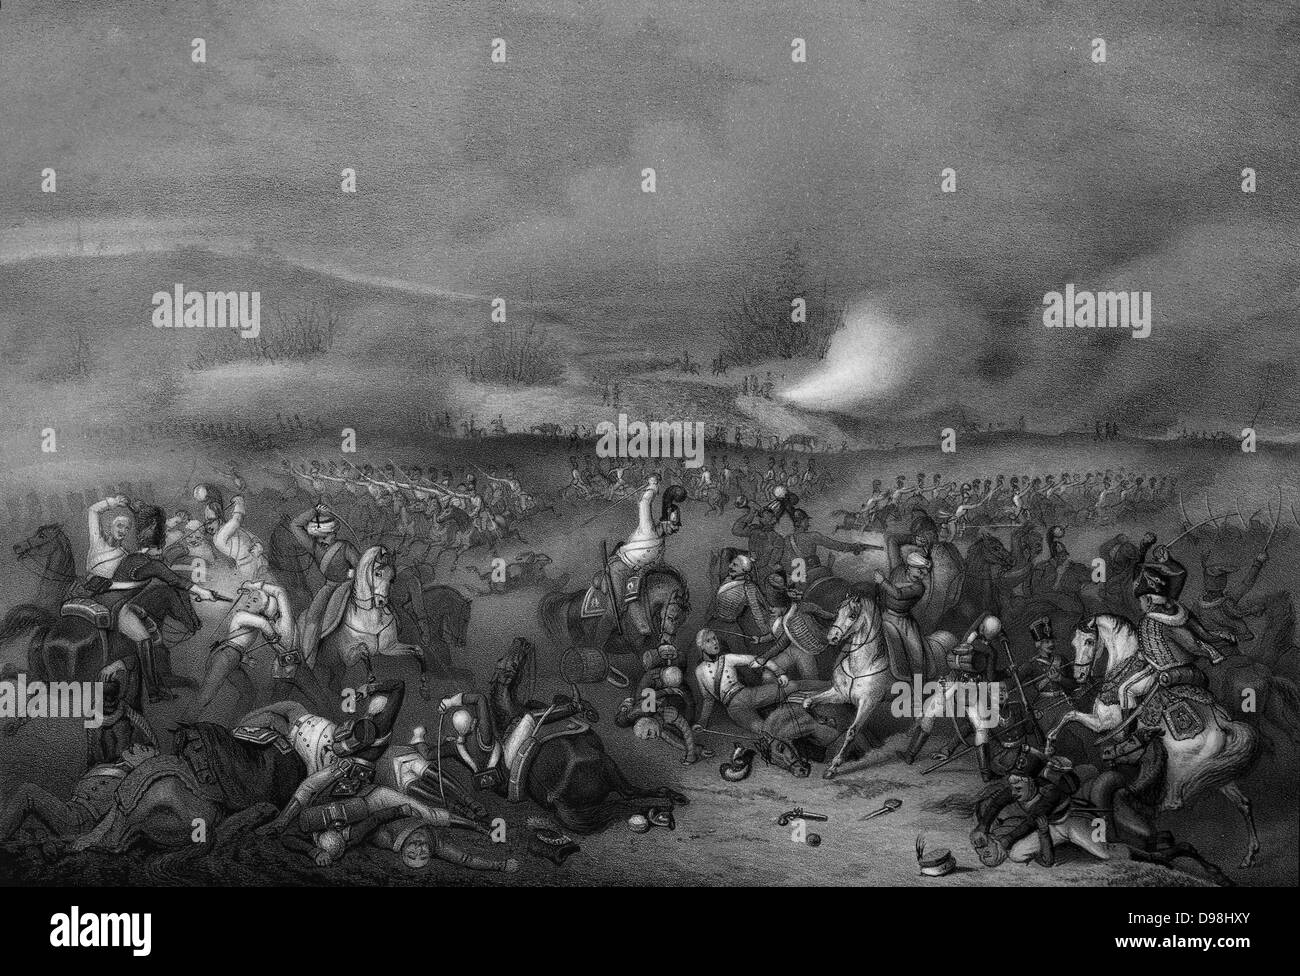 Napoléon at the Battle of Austerlitz, .The Battle of Austerlitz, also known as the Battle of the Three Emperors, - Stock Image